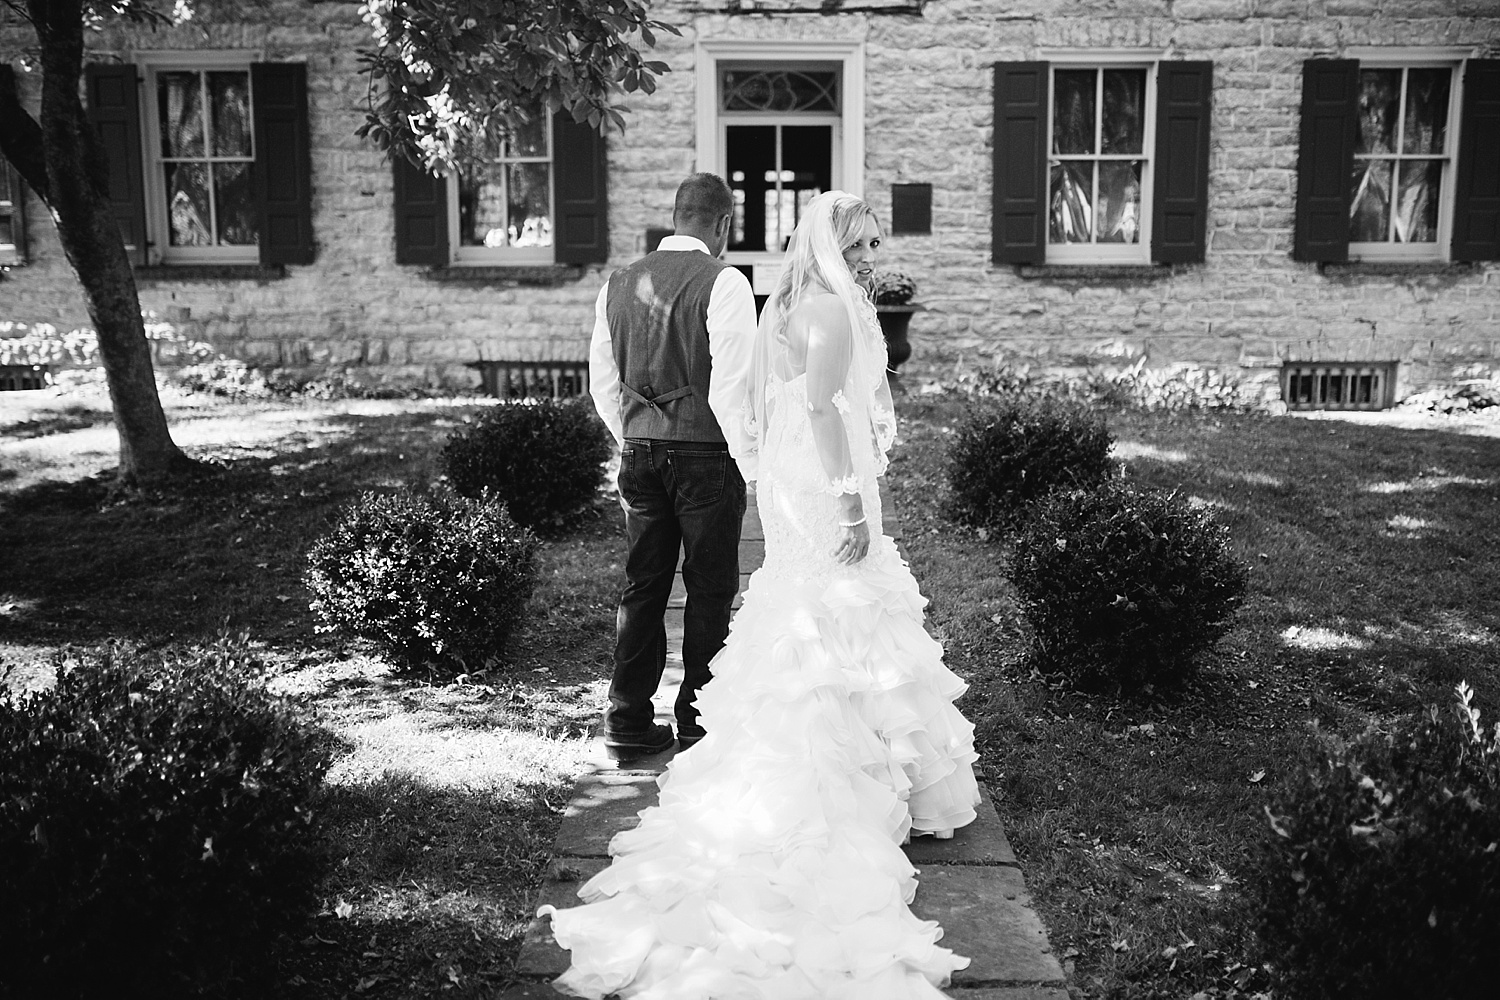 jennyryan_newbeginnings_farmstead_upstatenewyork_wedding_image055.jpg